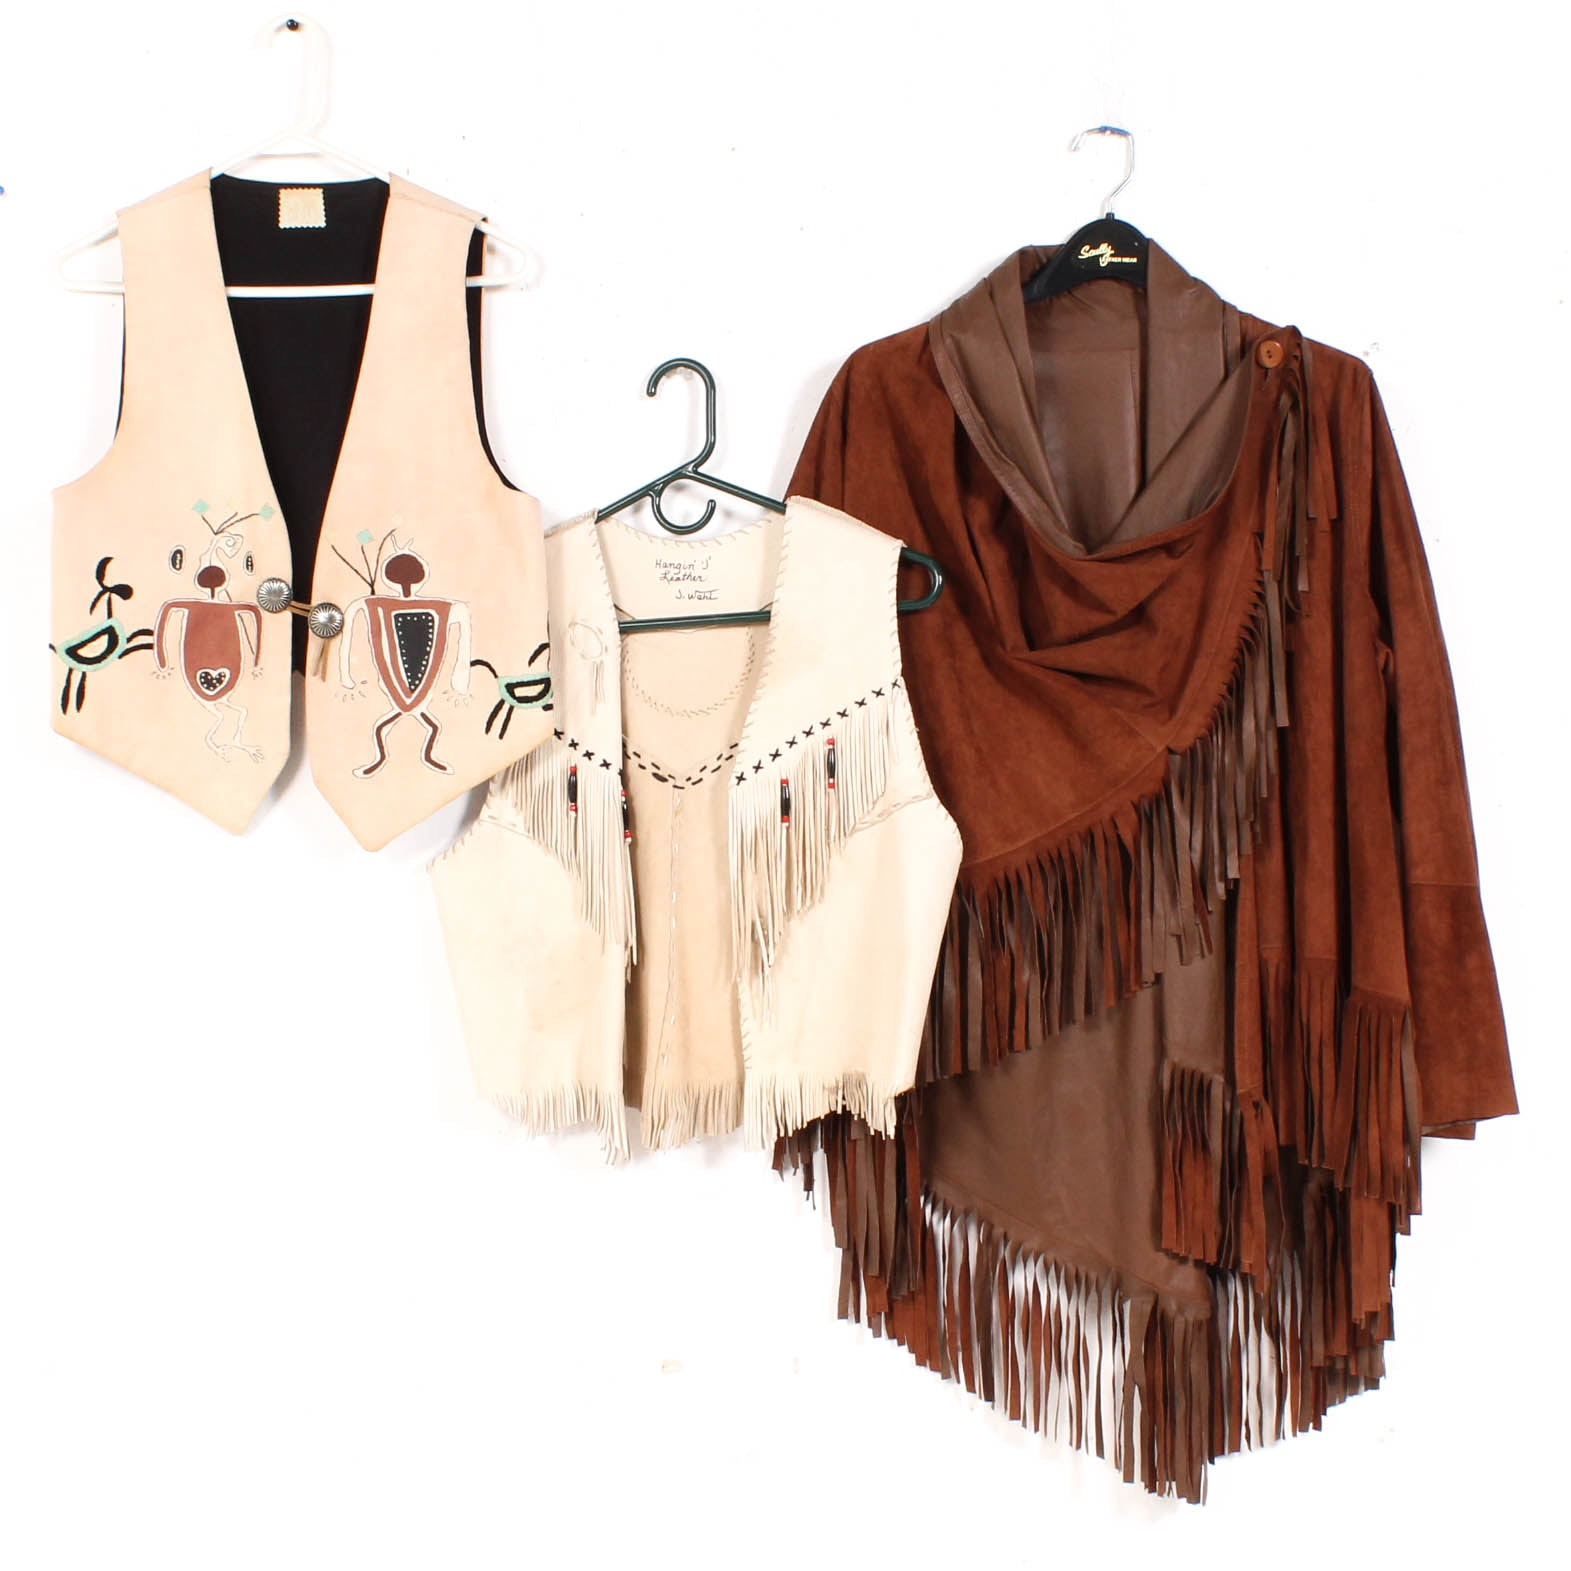 Handmade Southwestern-Style Vests and Fringed Jacket